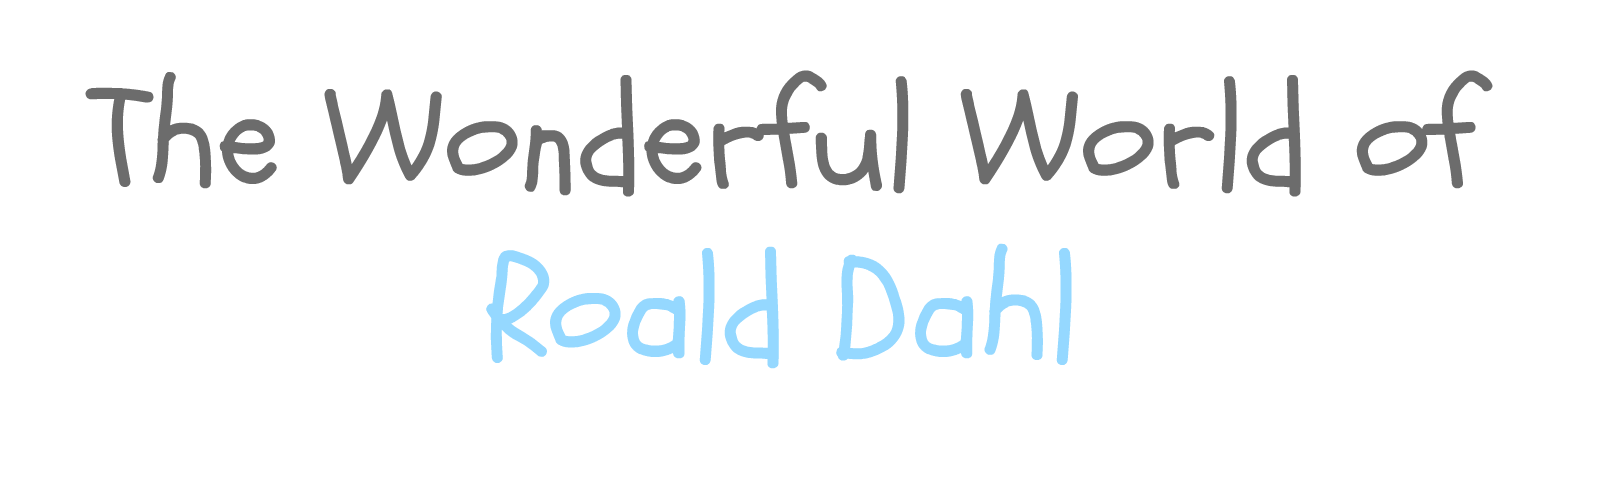 The Wonderful World of Dahl